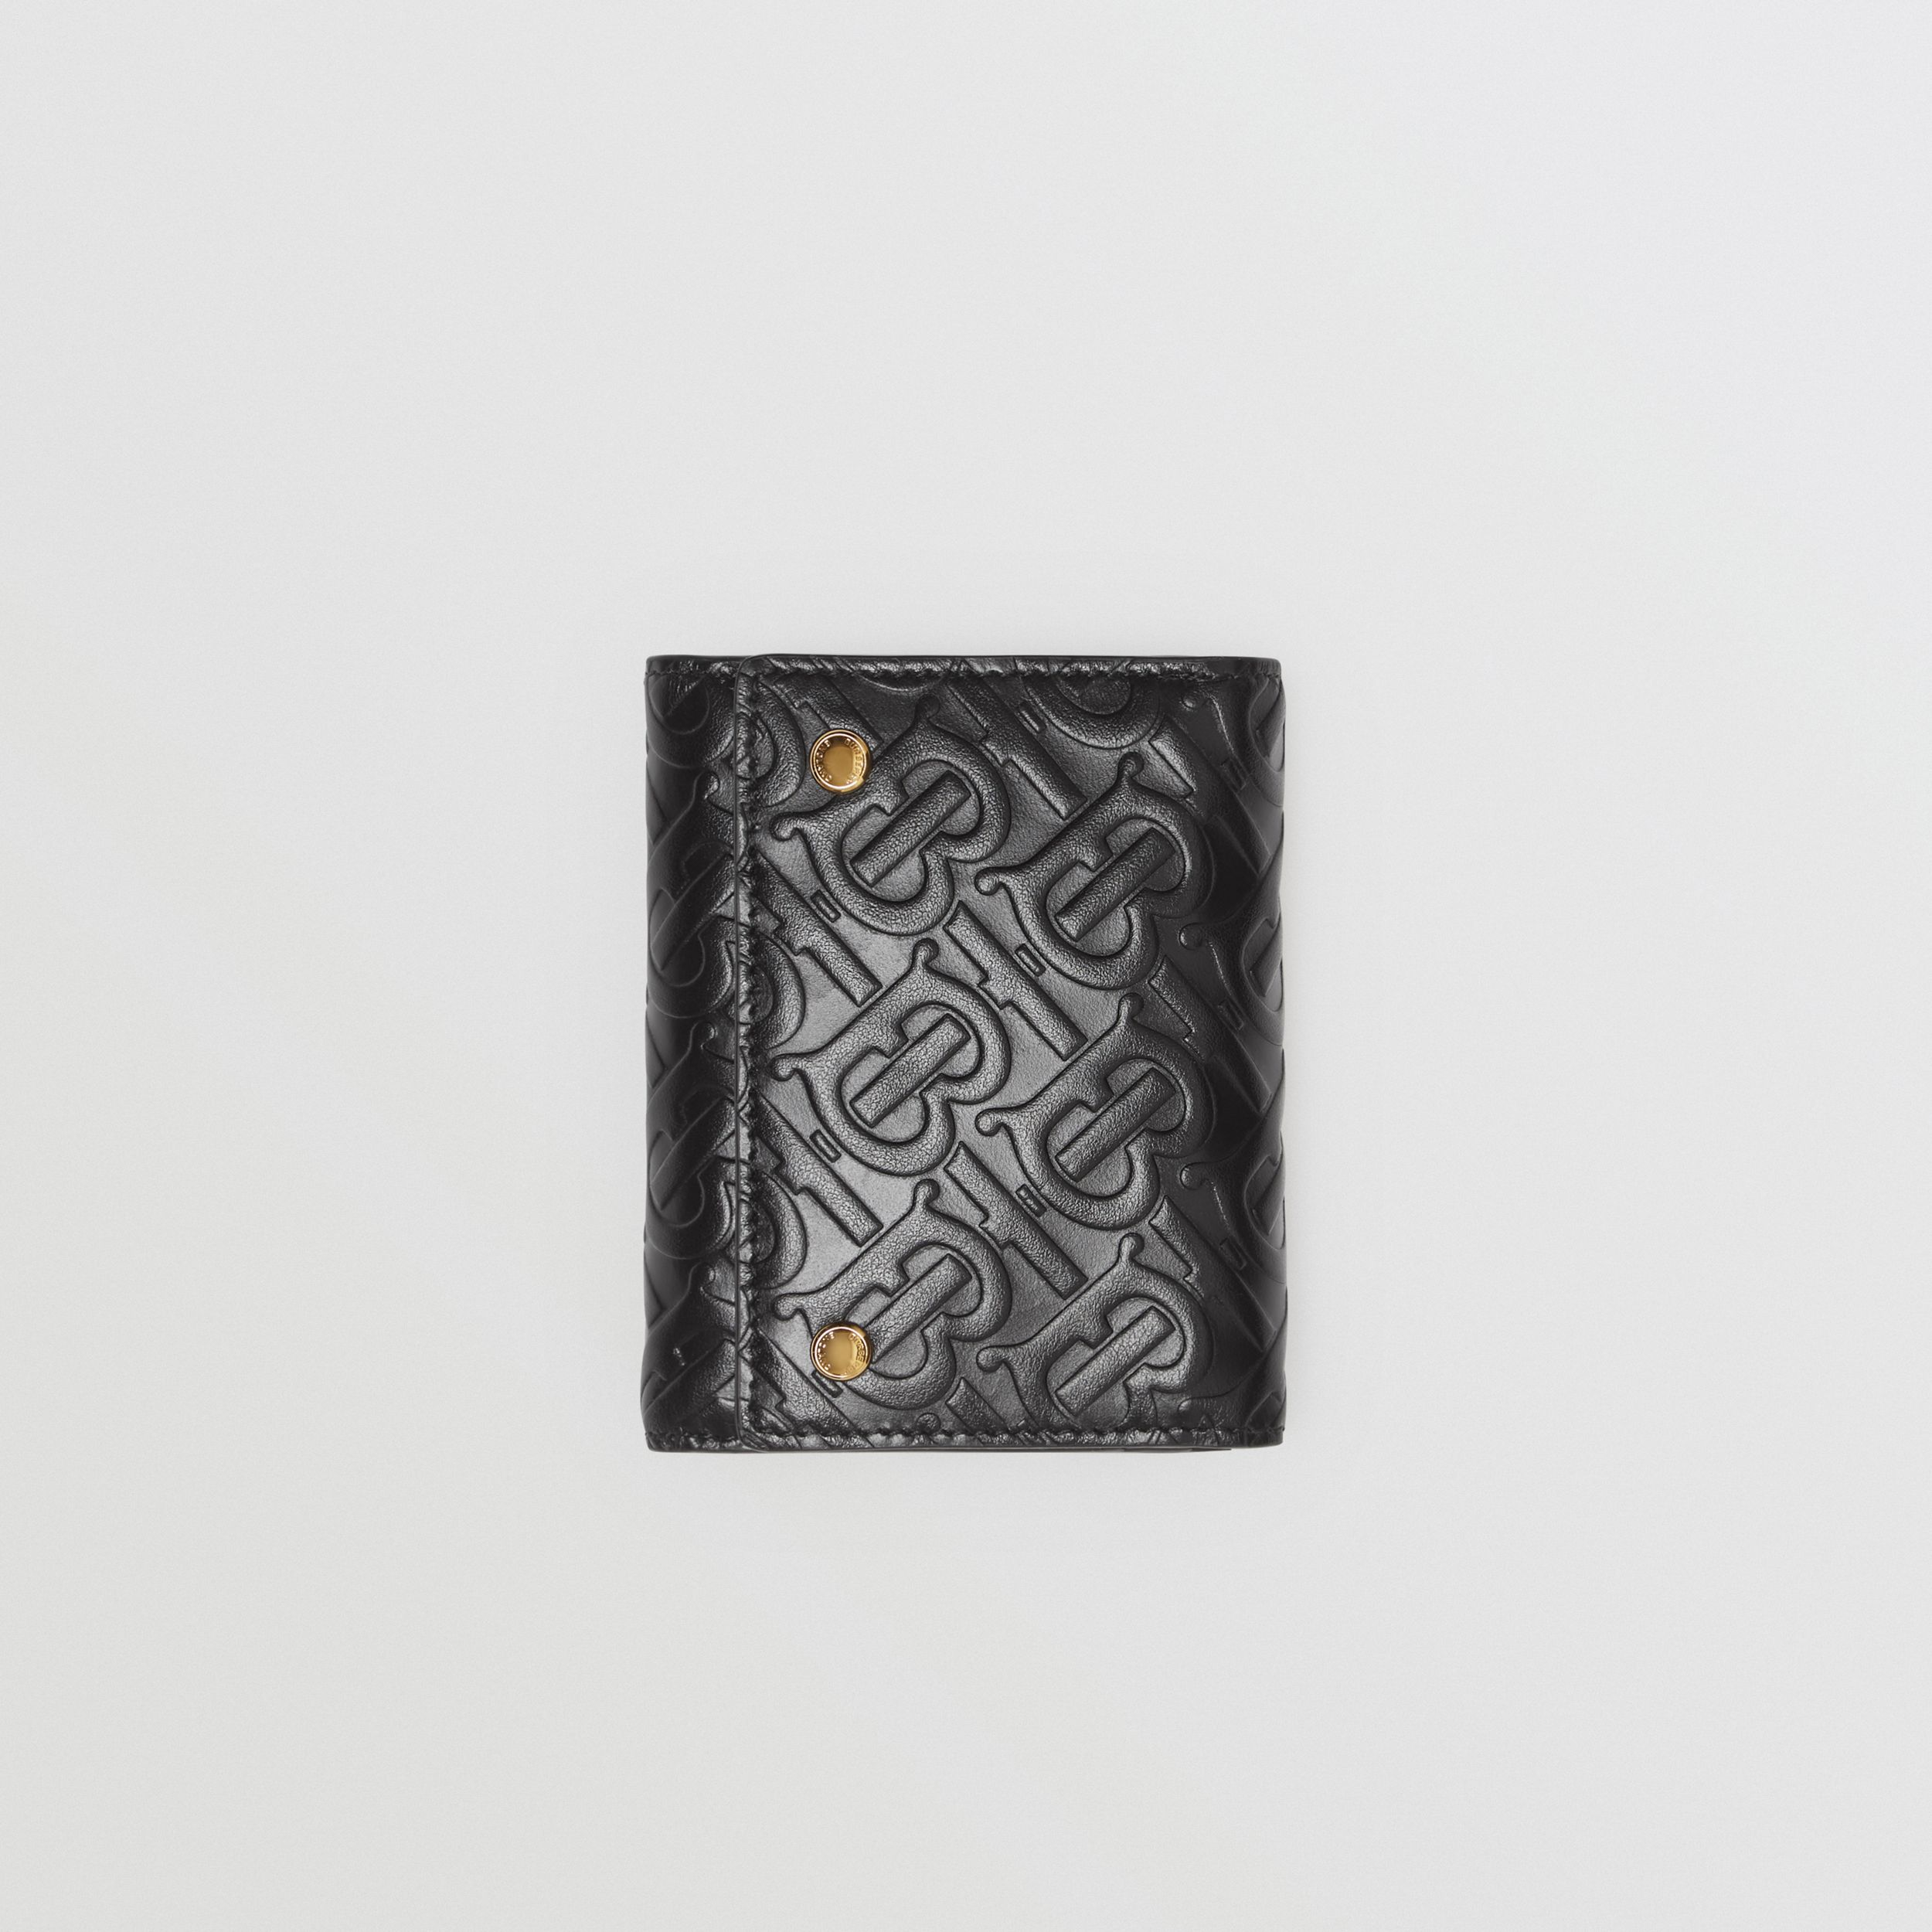 Small Monogram Leather Folding Wallet in Black - Men | Burberry - 4